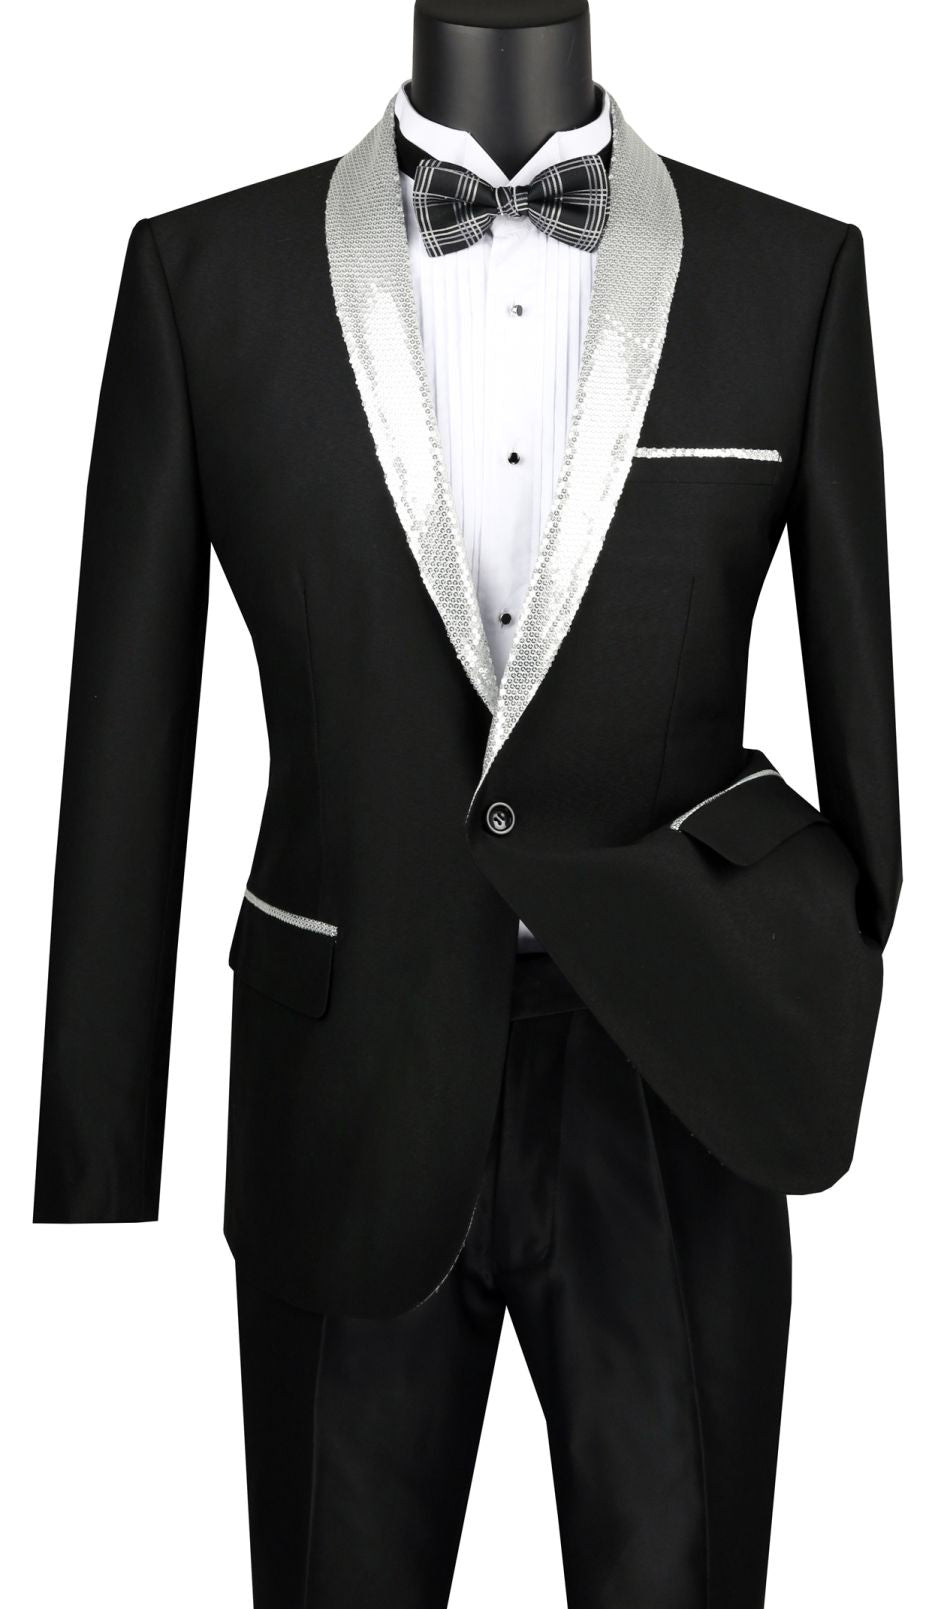 Vinci Men Sport Coat BSQ-3-Black/Silver - Church Suits For Less